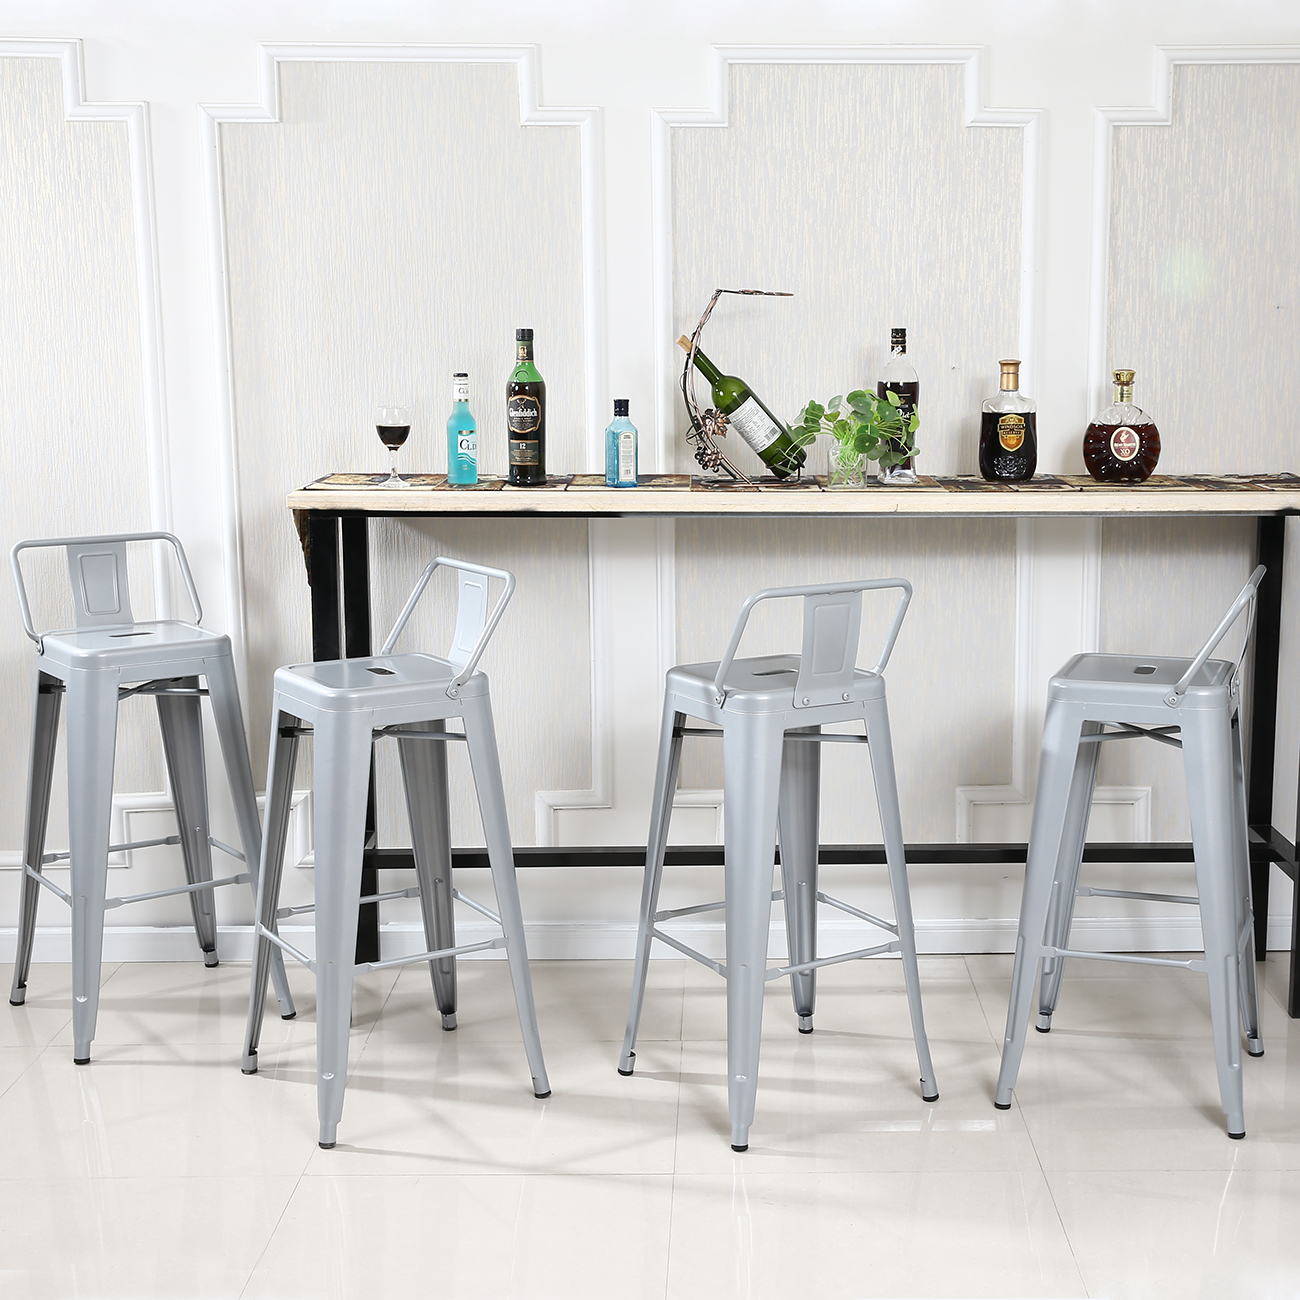 4pc Bar Stool Height Modern Chair Low Back W Footrest